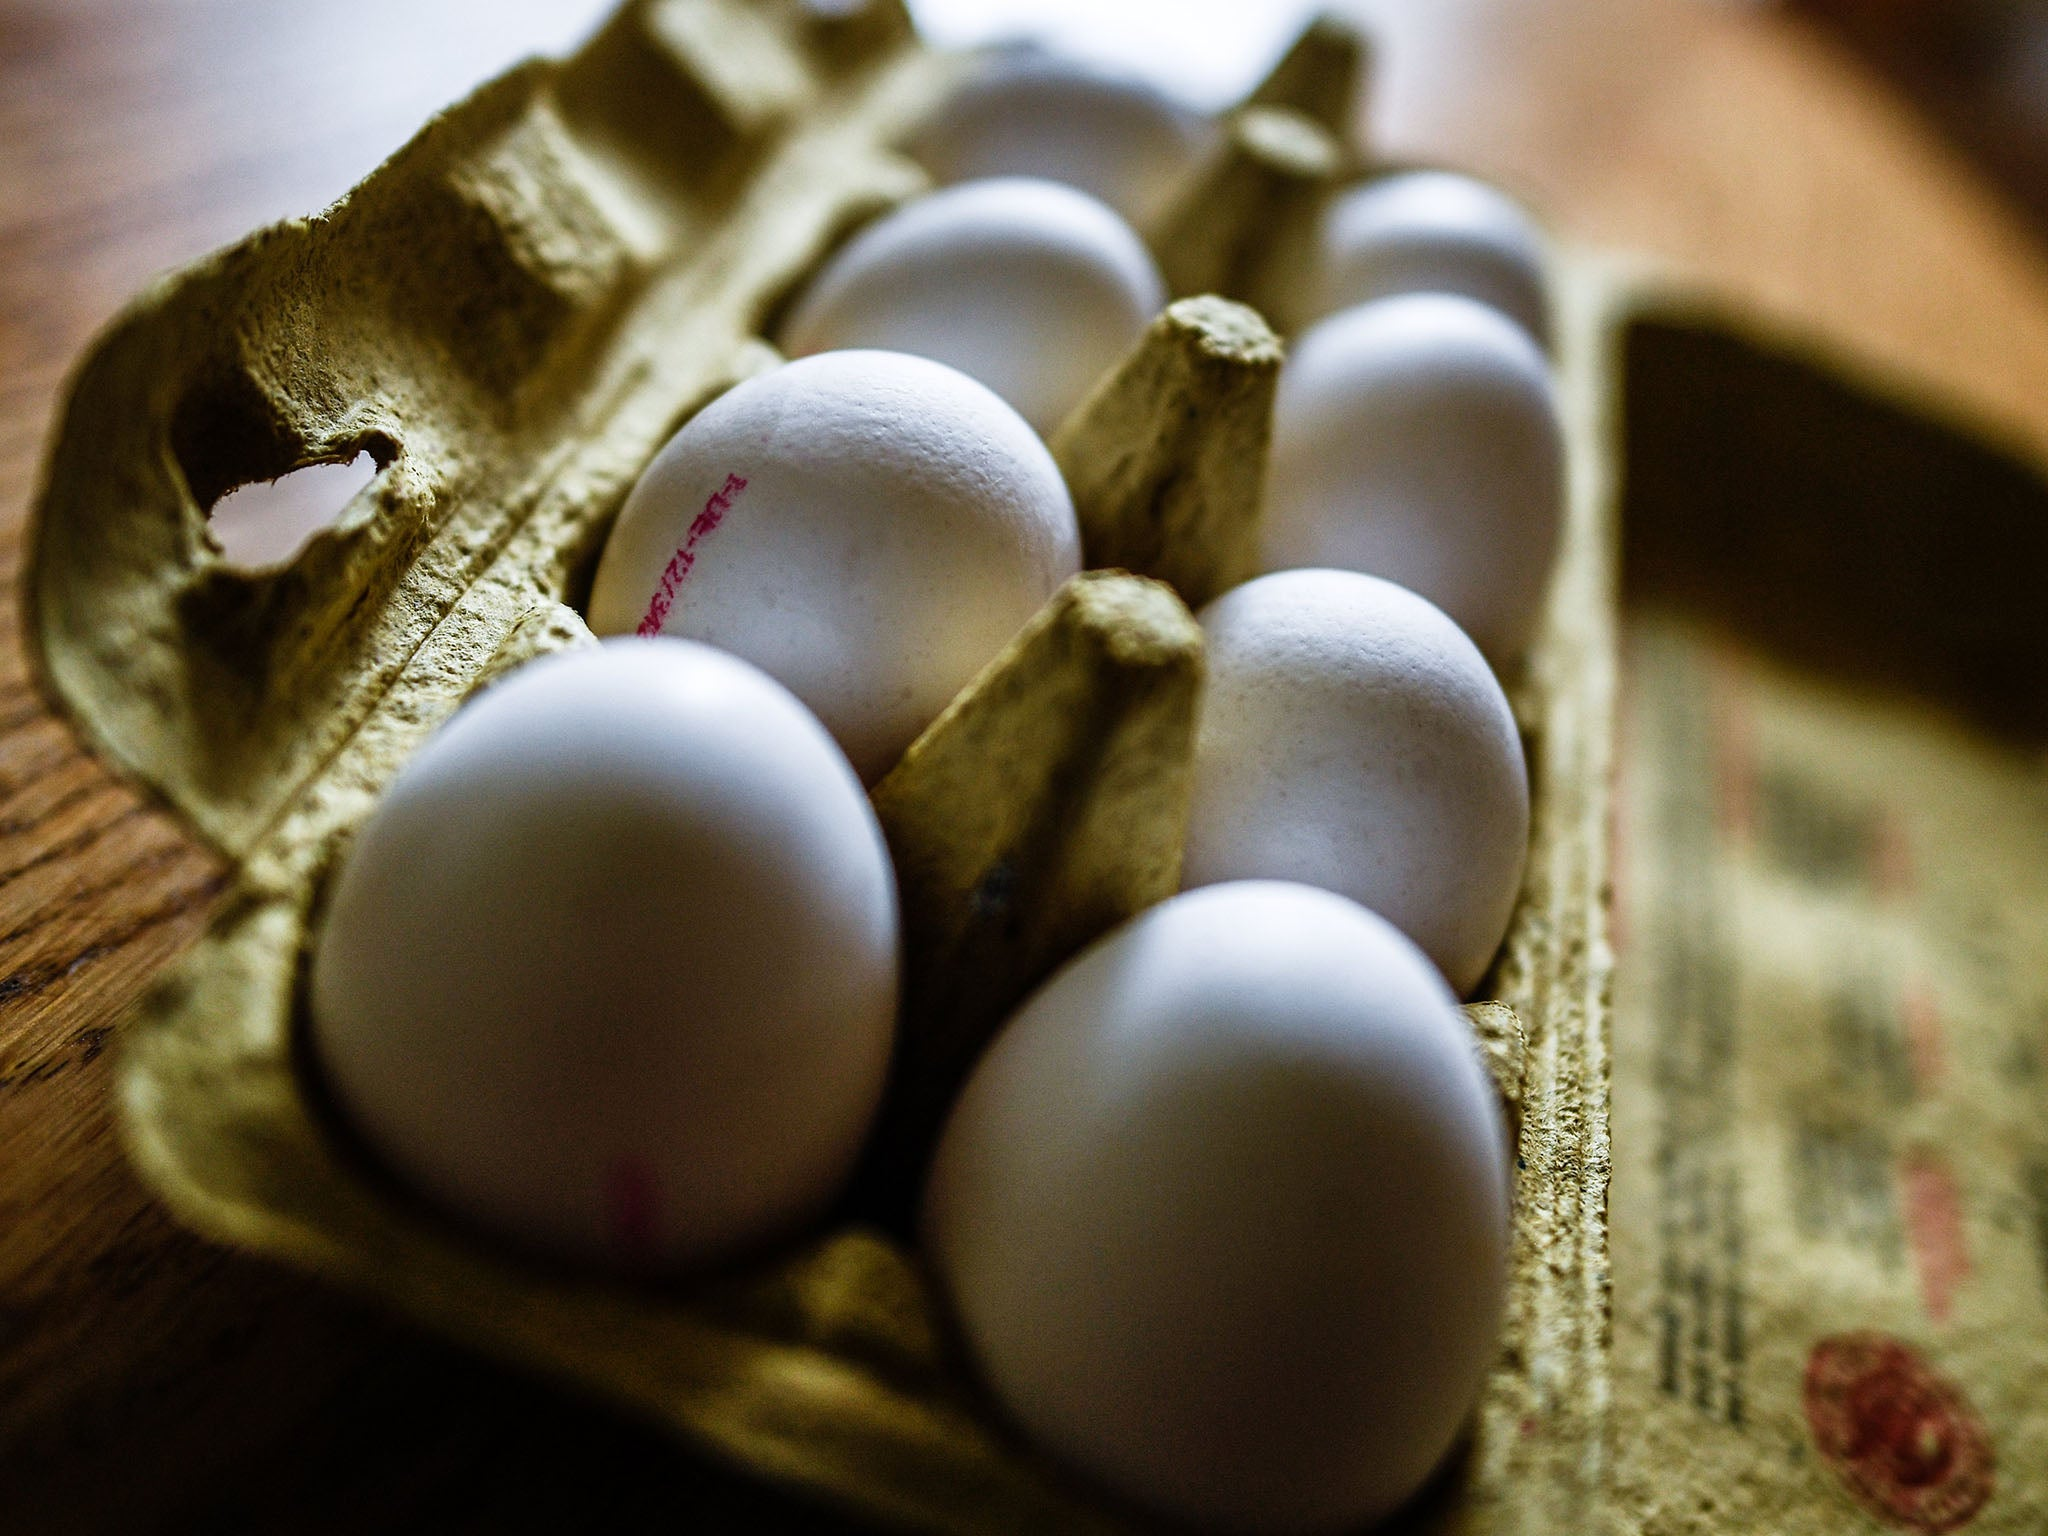 belgium admits it knew about contaminated dutch eggs back in june